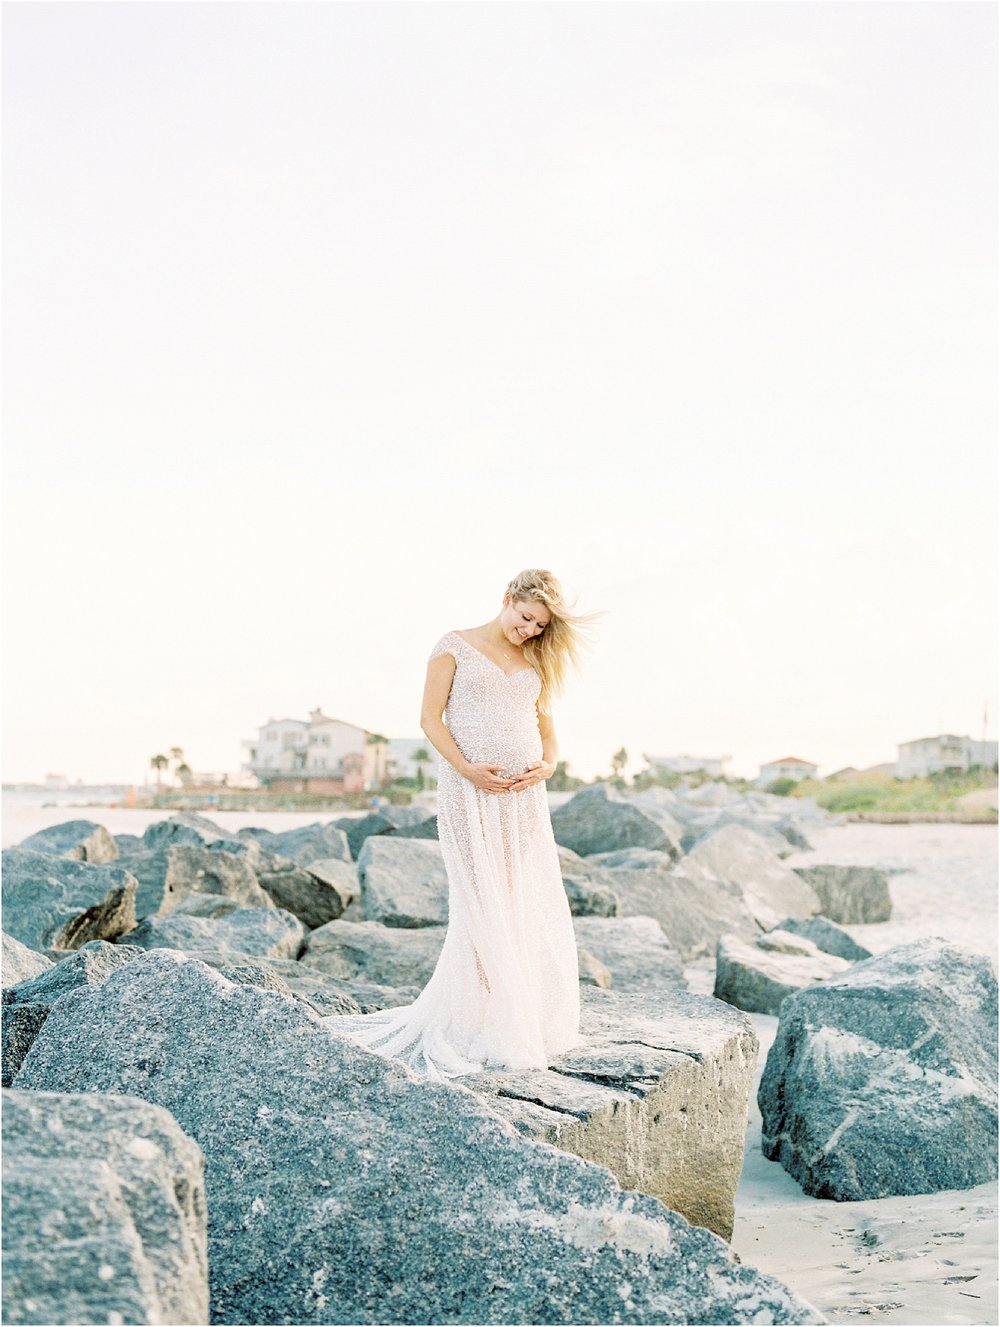 Lisa Silva Photography- Ponte Vedra Beach, St. Augustine and Jacksonville, Florida Fine Art Film Wedding and Boudoir Photography- Lifestyle Maternity Session_0011.jpg